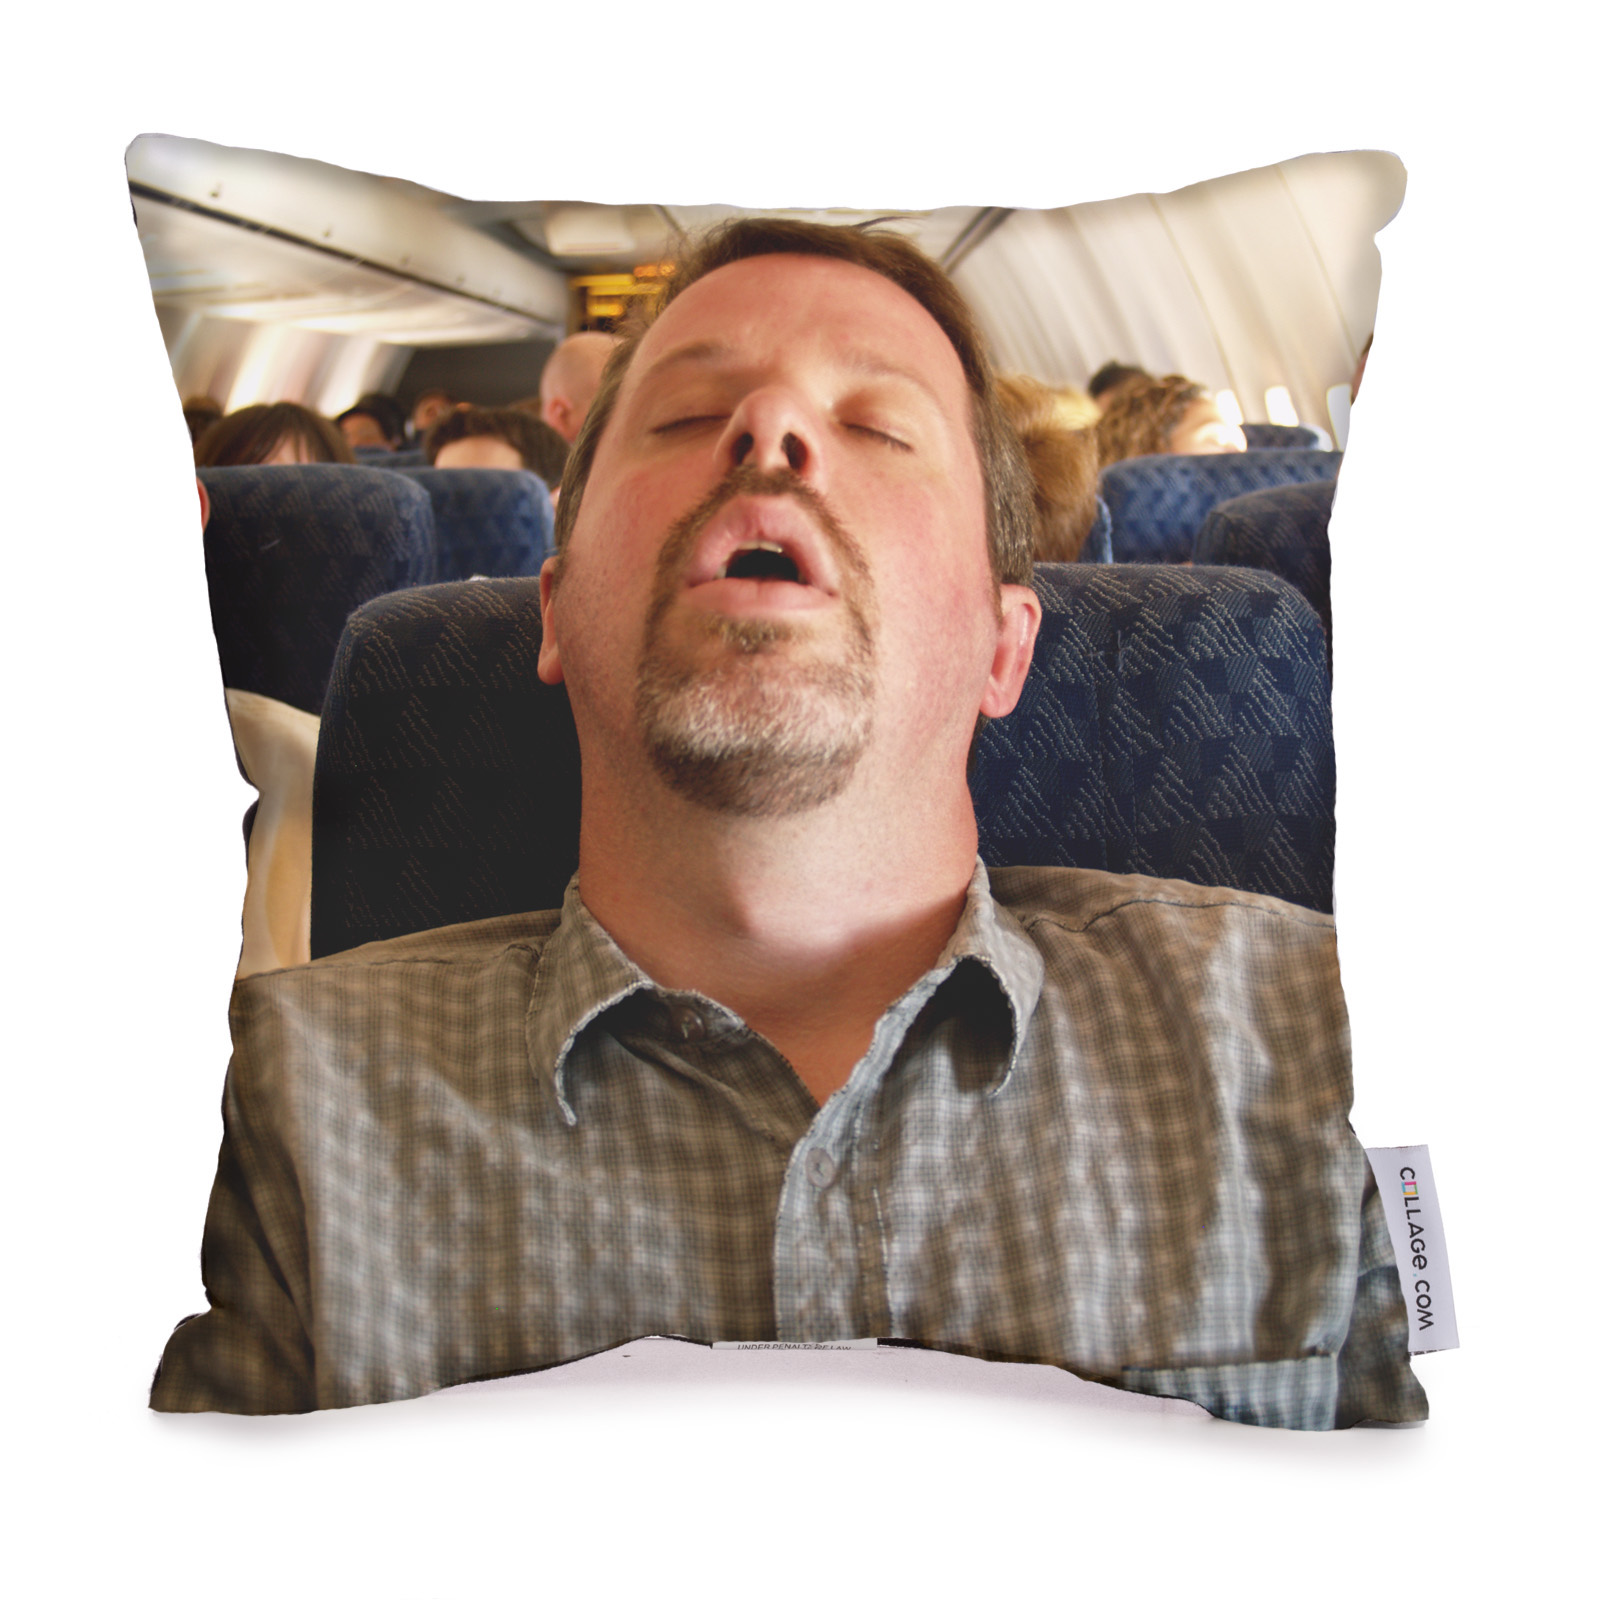 Photo pillow with picture of man sleeping